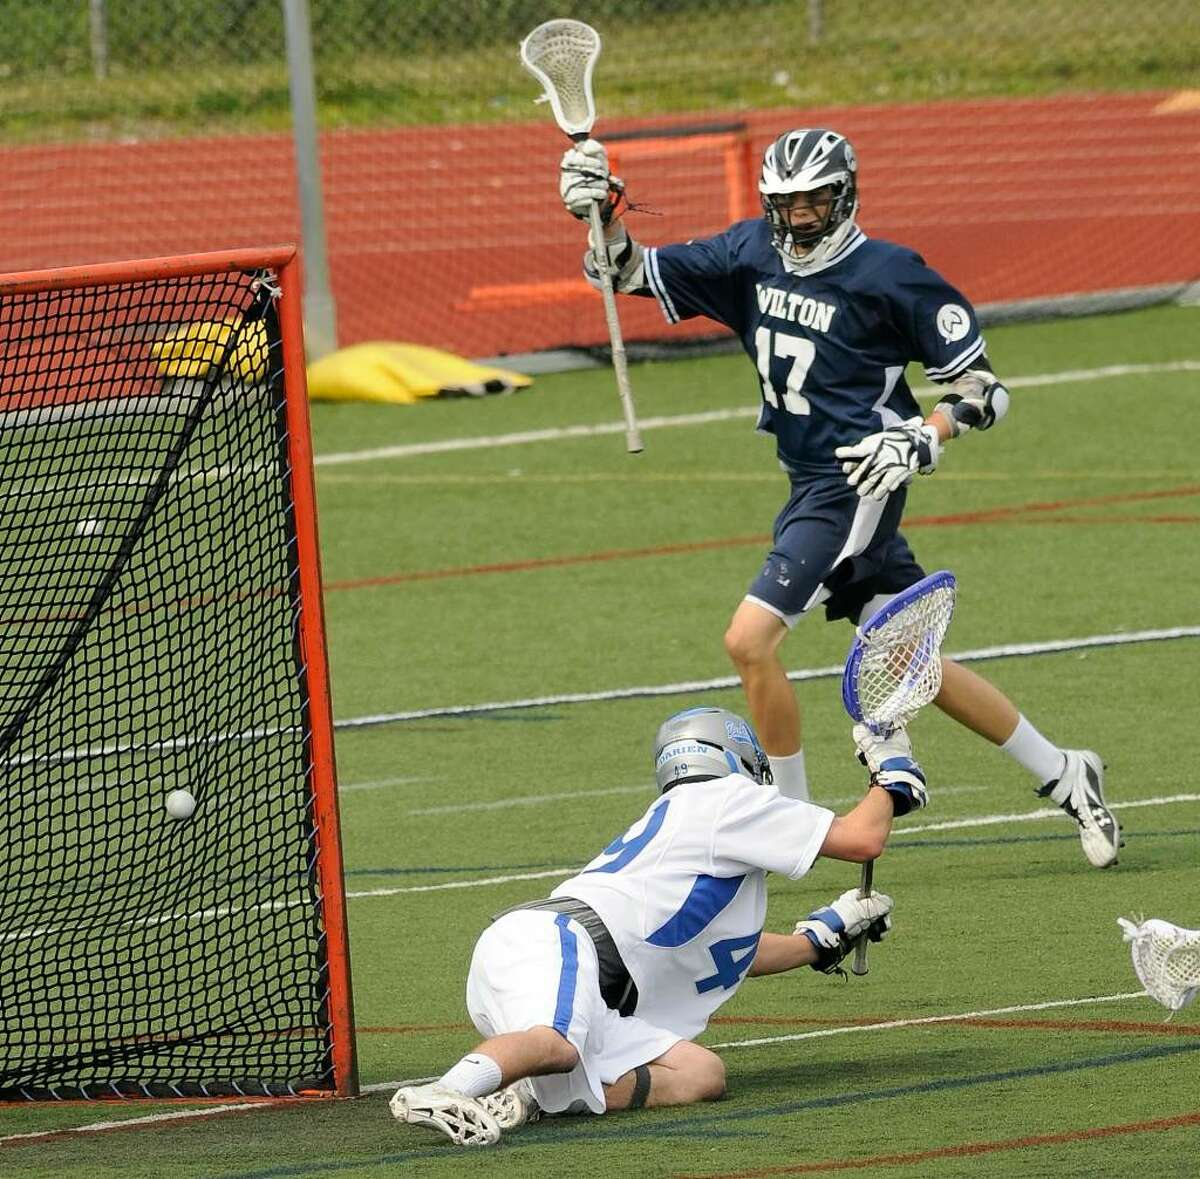 Darien High School hosts Wilton High School for the boys' lacrosse quarterfinals on Saturday June 5, 2010. Wilton #17 Christopher Nugent celebrates Wilton's second goal of the game, as it gets past Darien goalie #49 Andrew West.